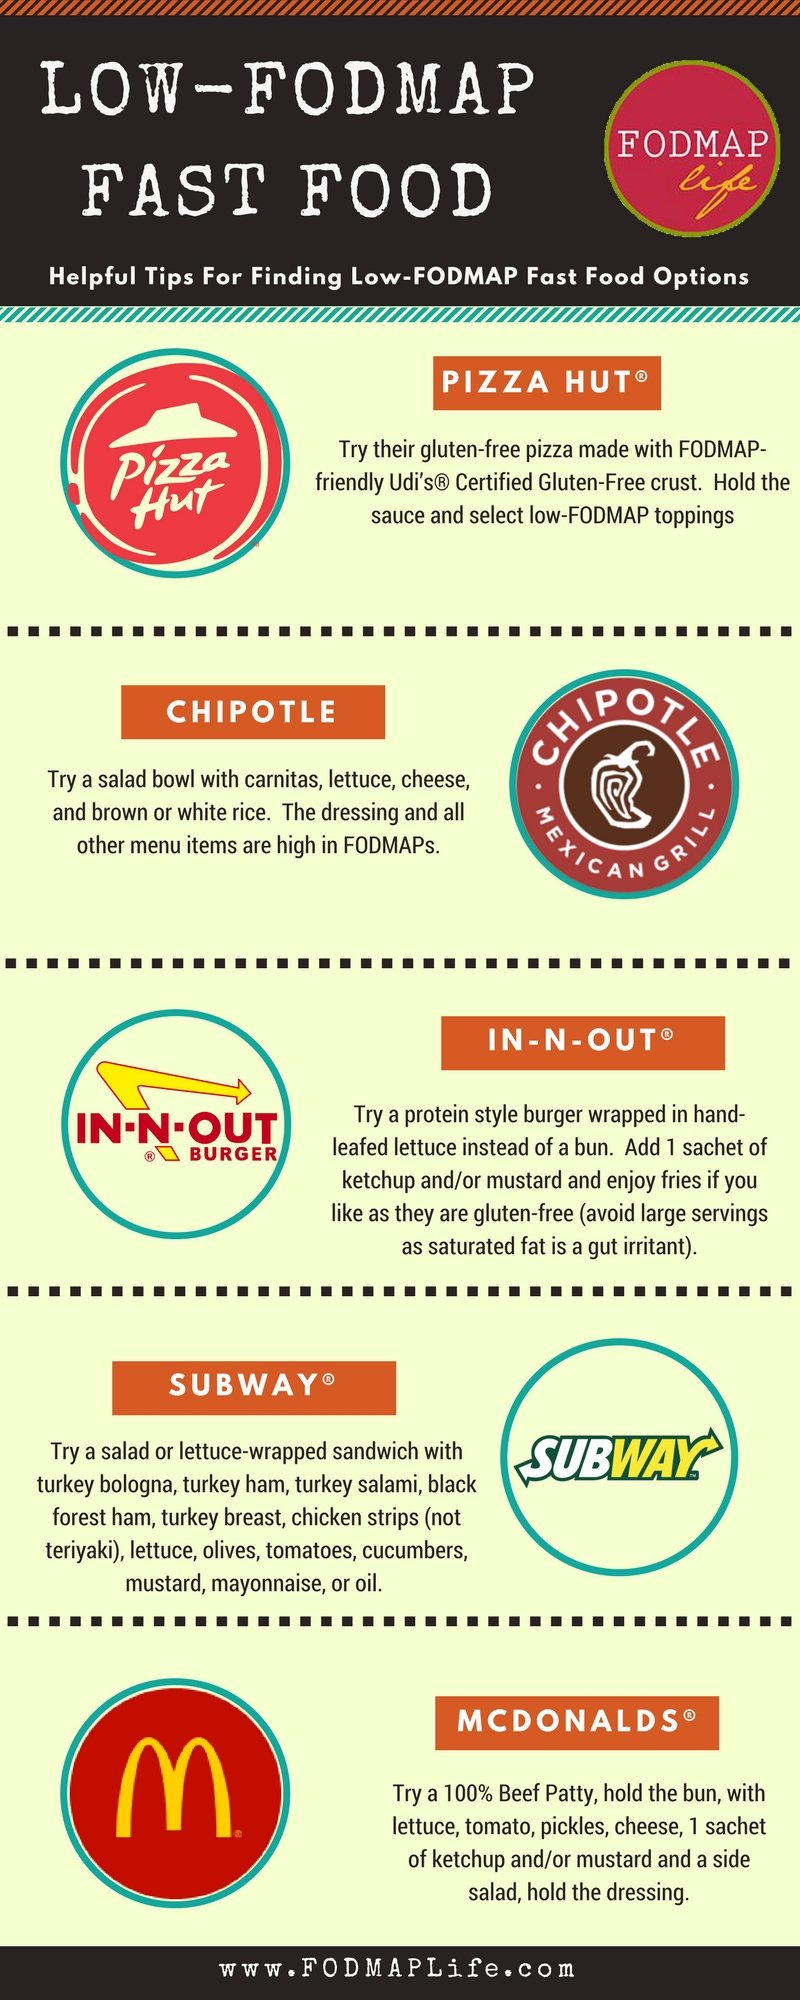 low fodmap fast food options